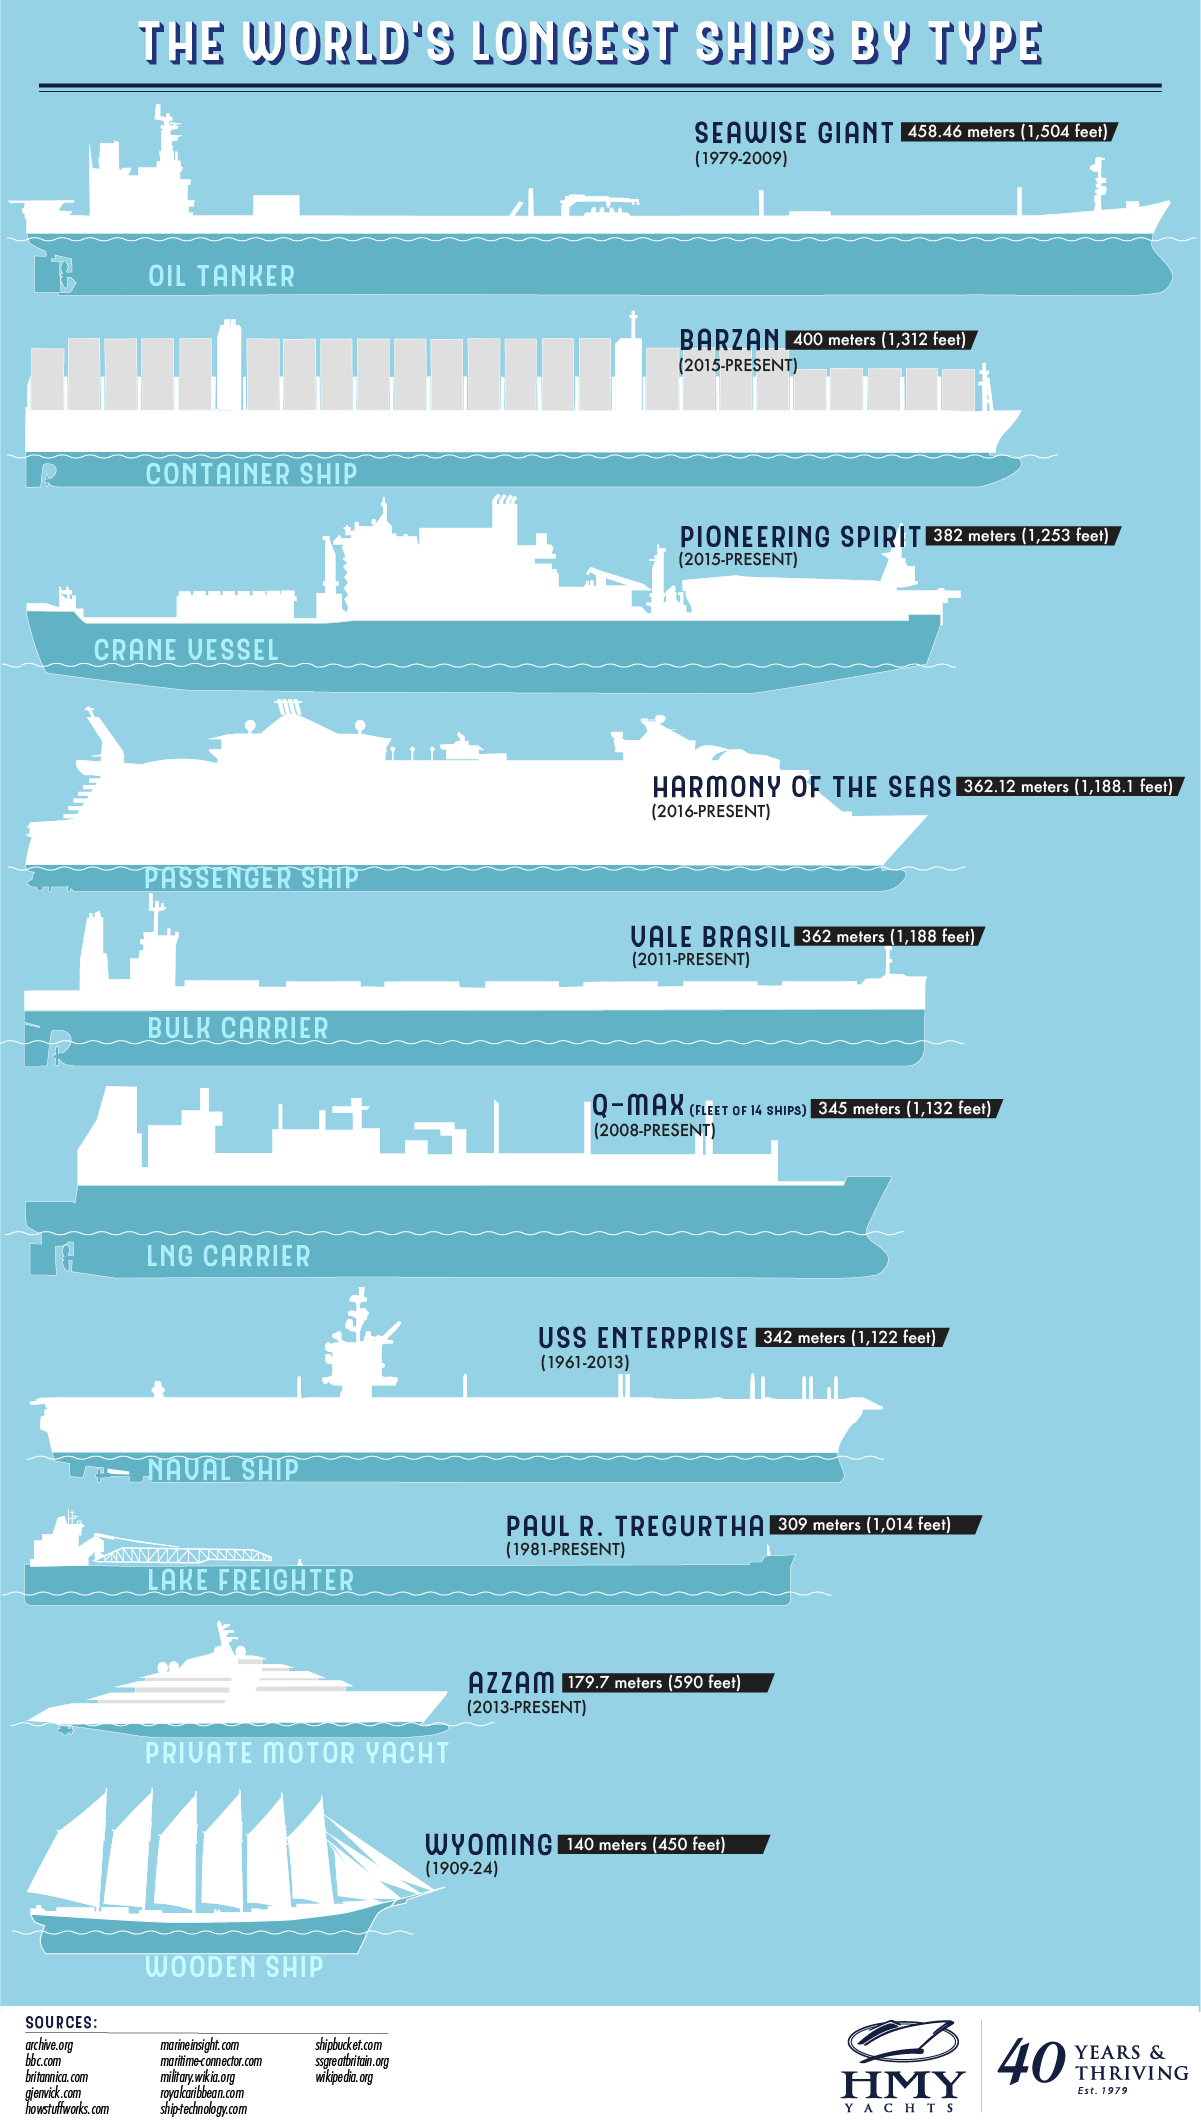 The World's Longest Ships by Type - HMY.com - Infographic